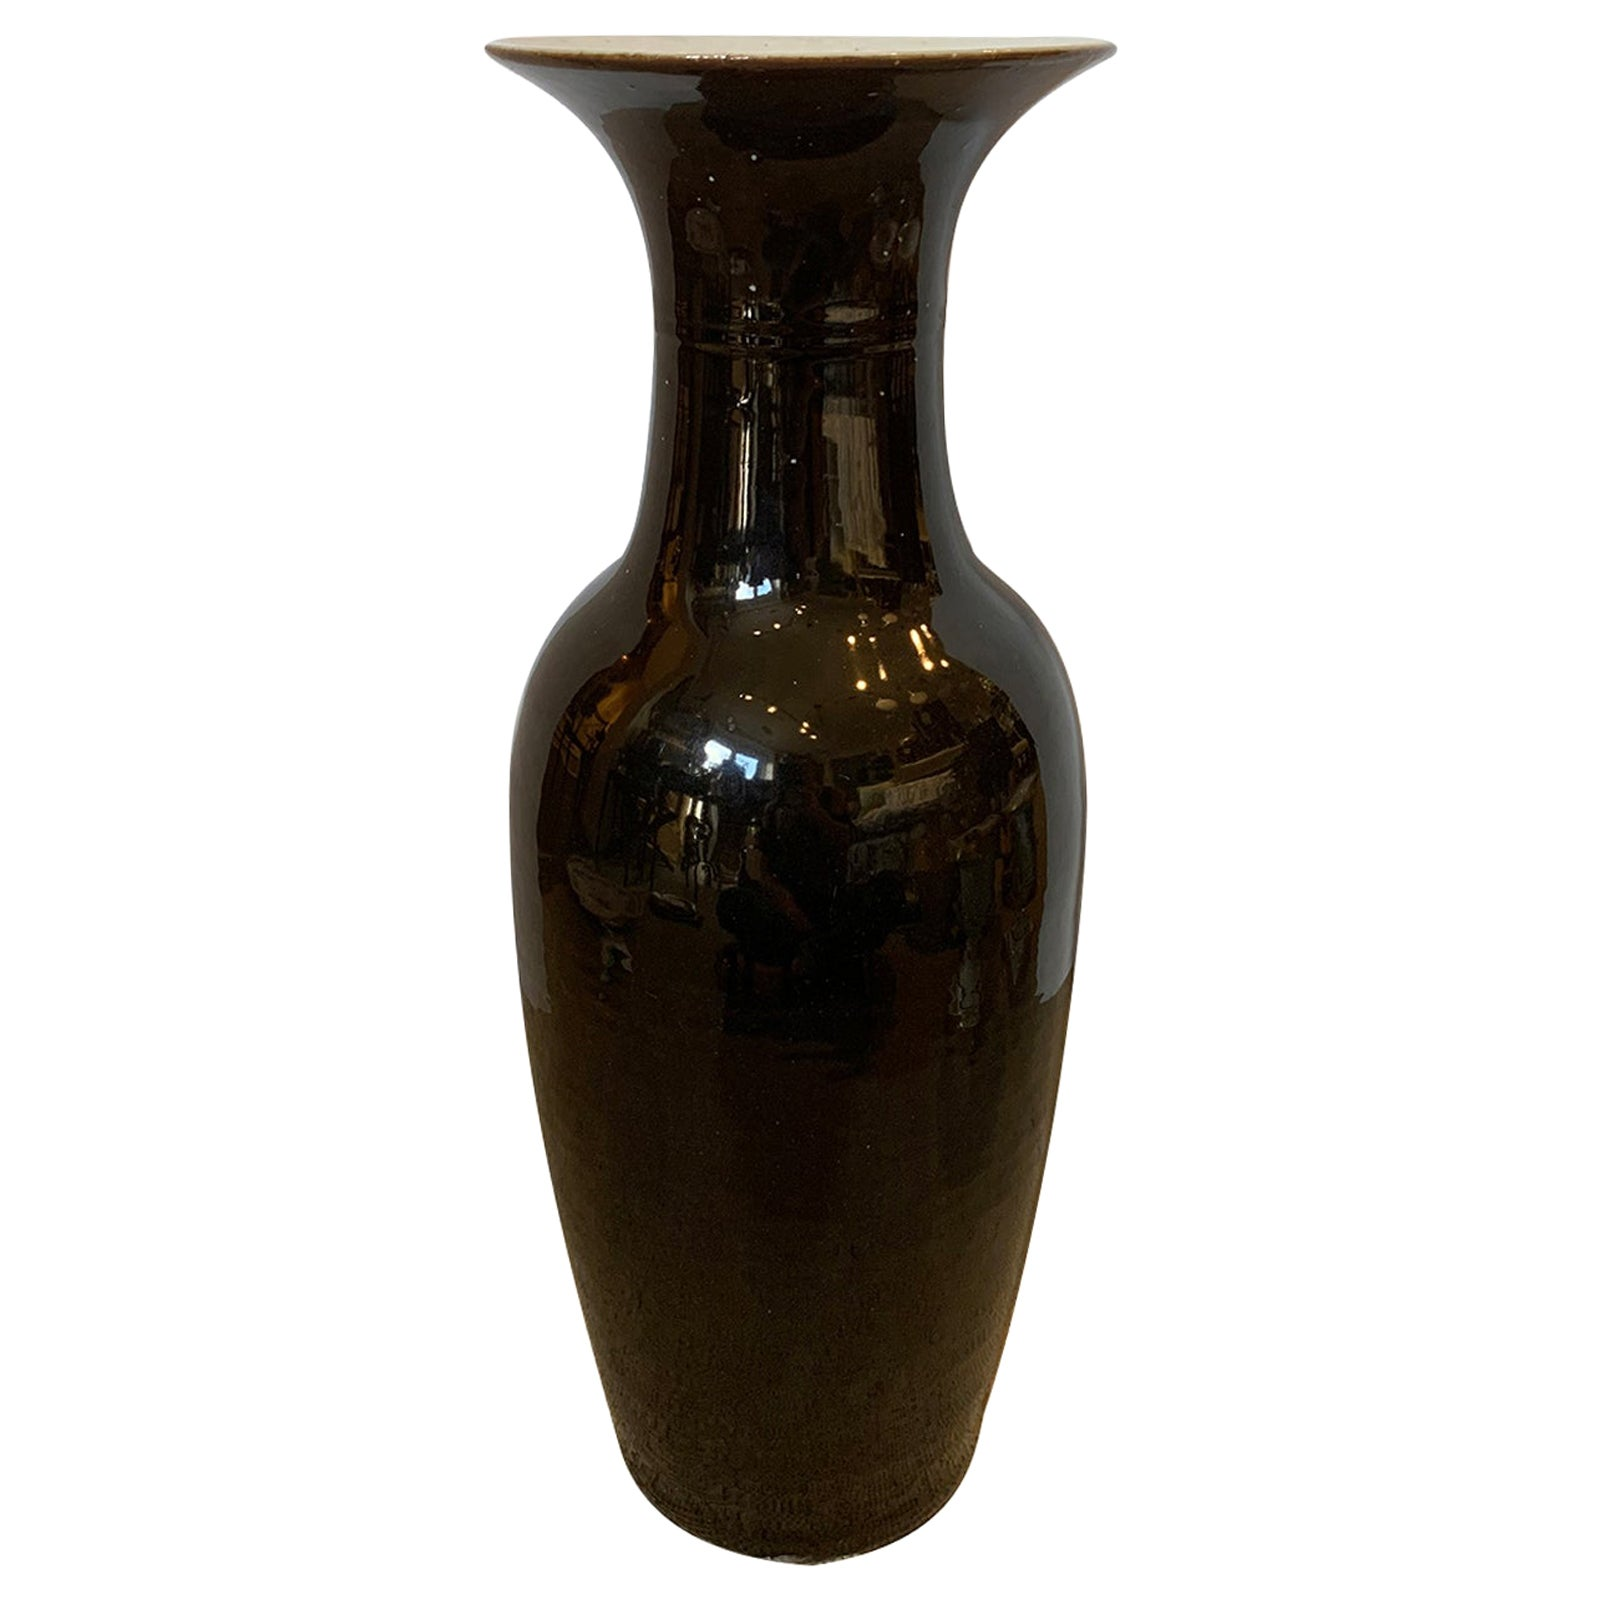 19th Century Chinese Mirror Black Porcelain Vase, Unmarked